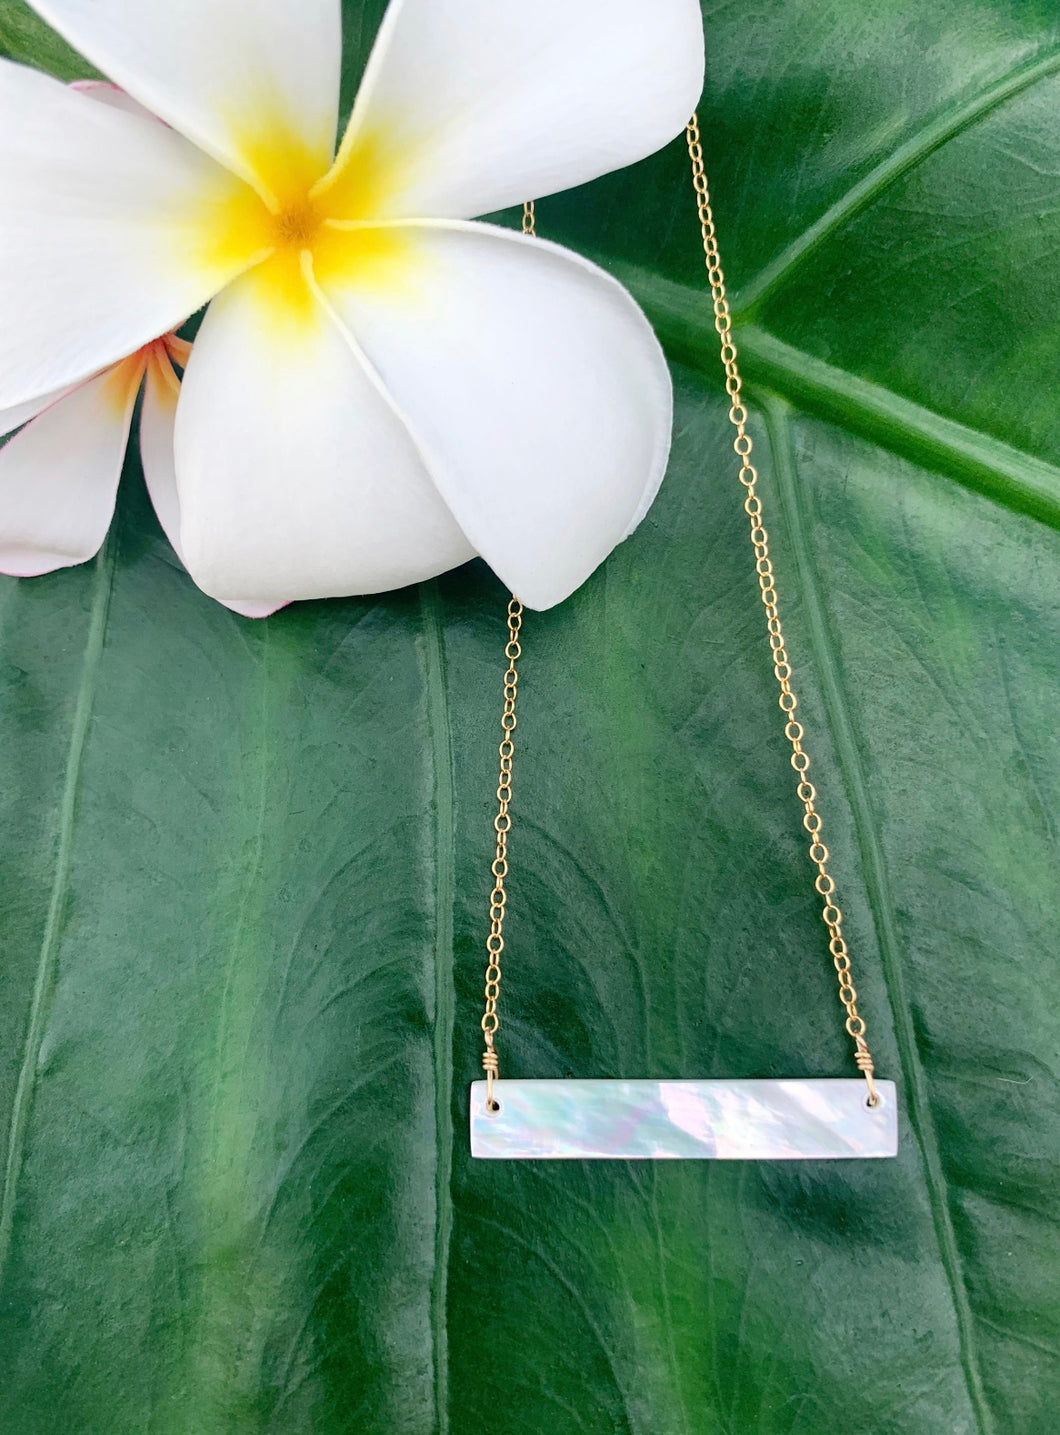 Siargao Mother-of-Pearl Bar necklace